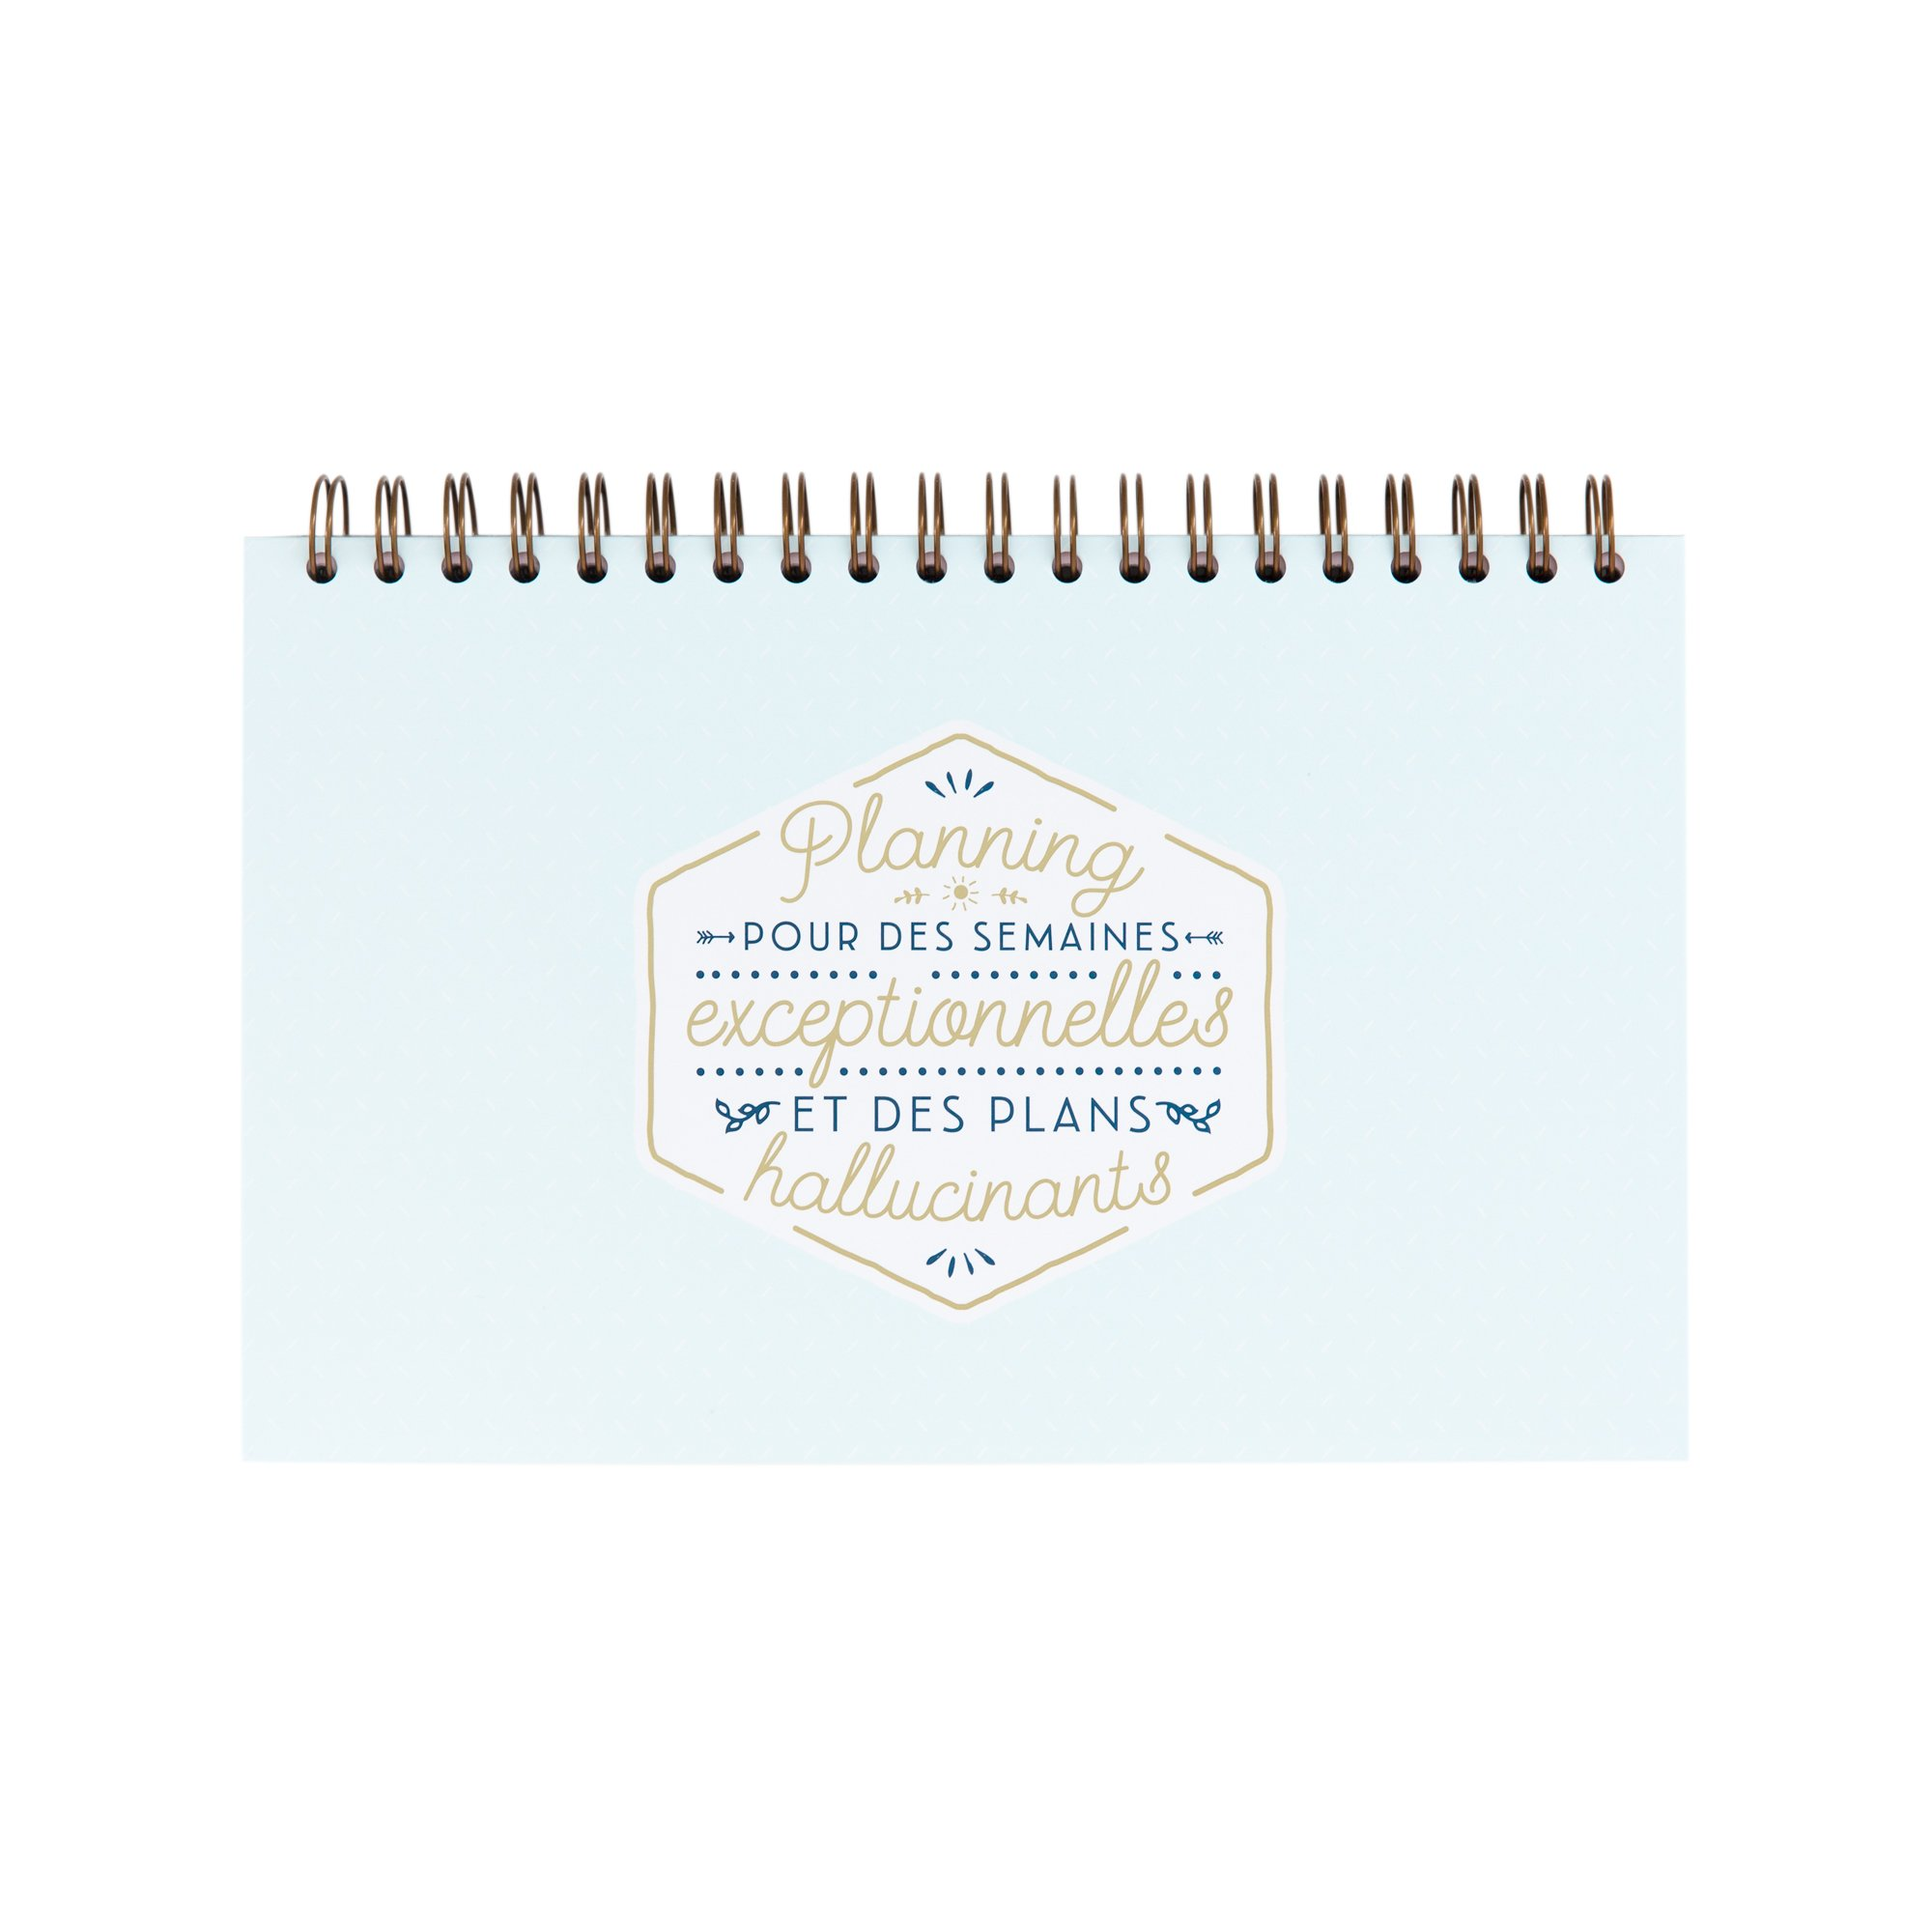 Mr. Wonderful woa08522fr Planner for Exceptional Weeks and Plans hallucinants